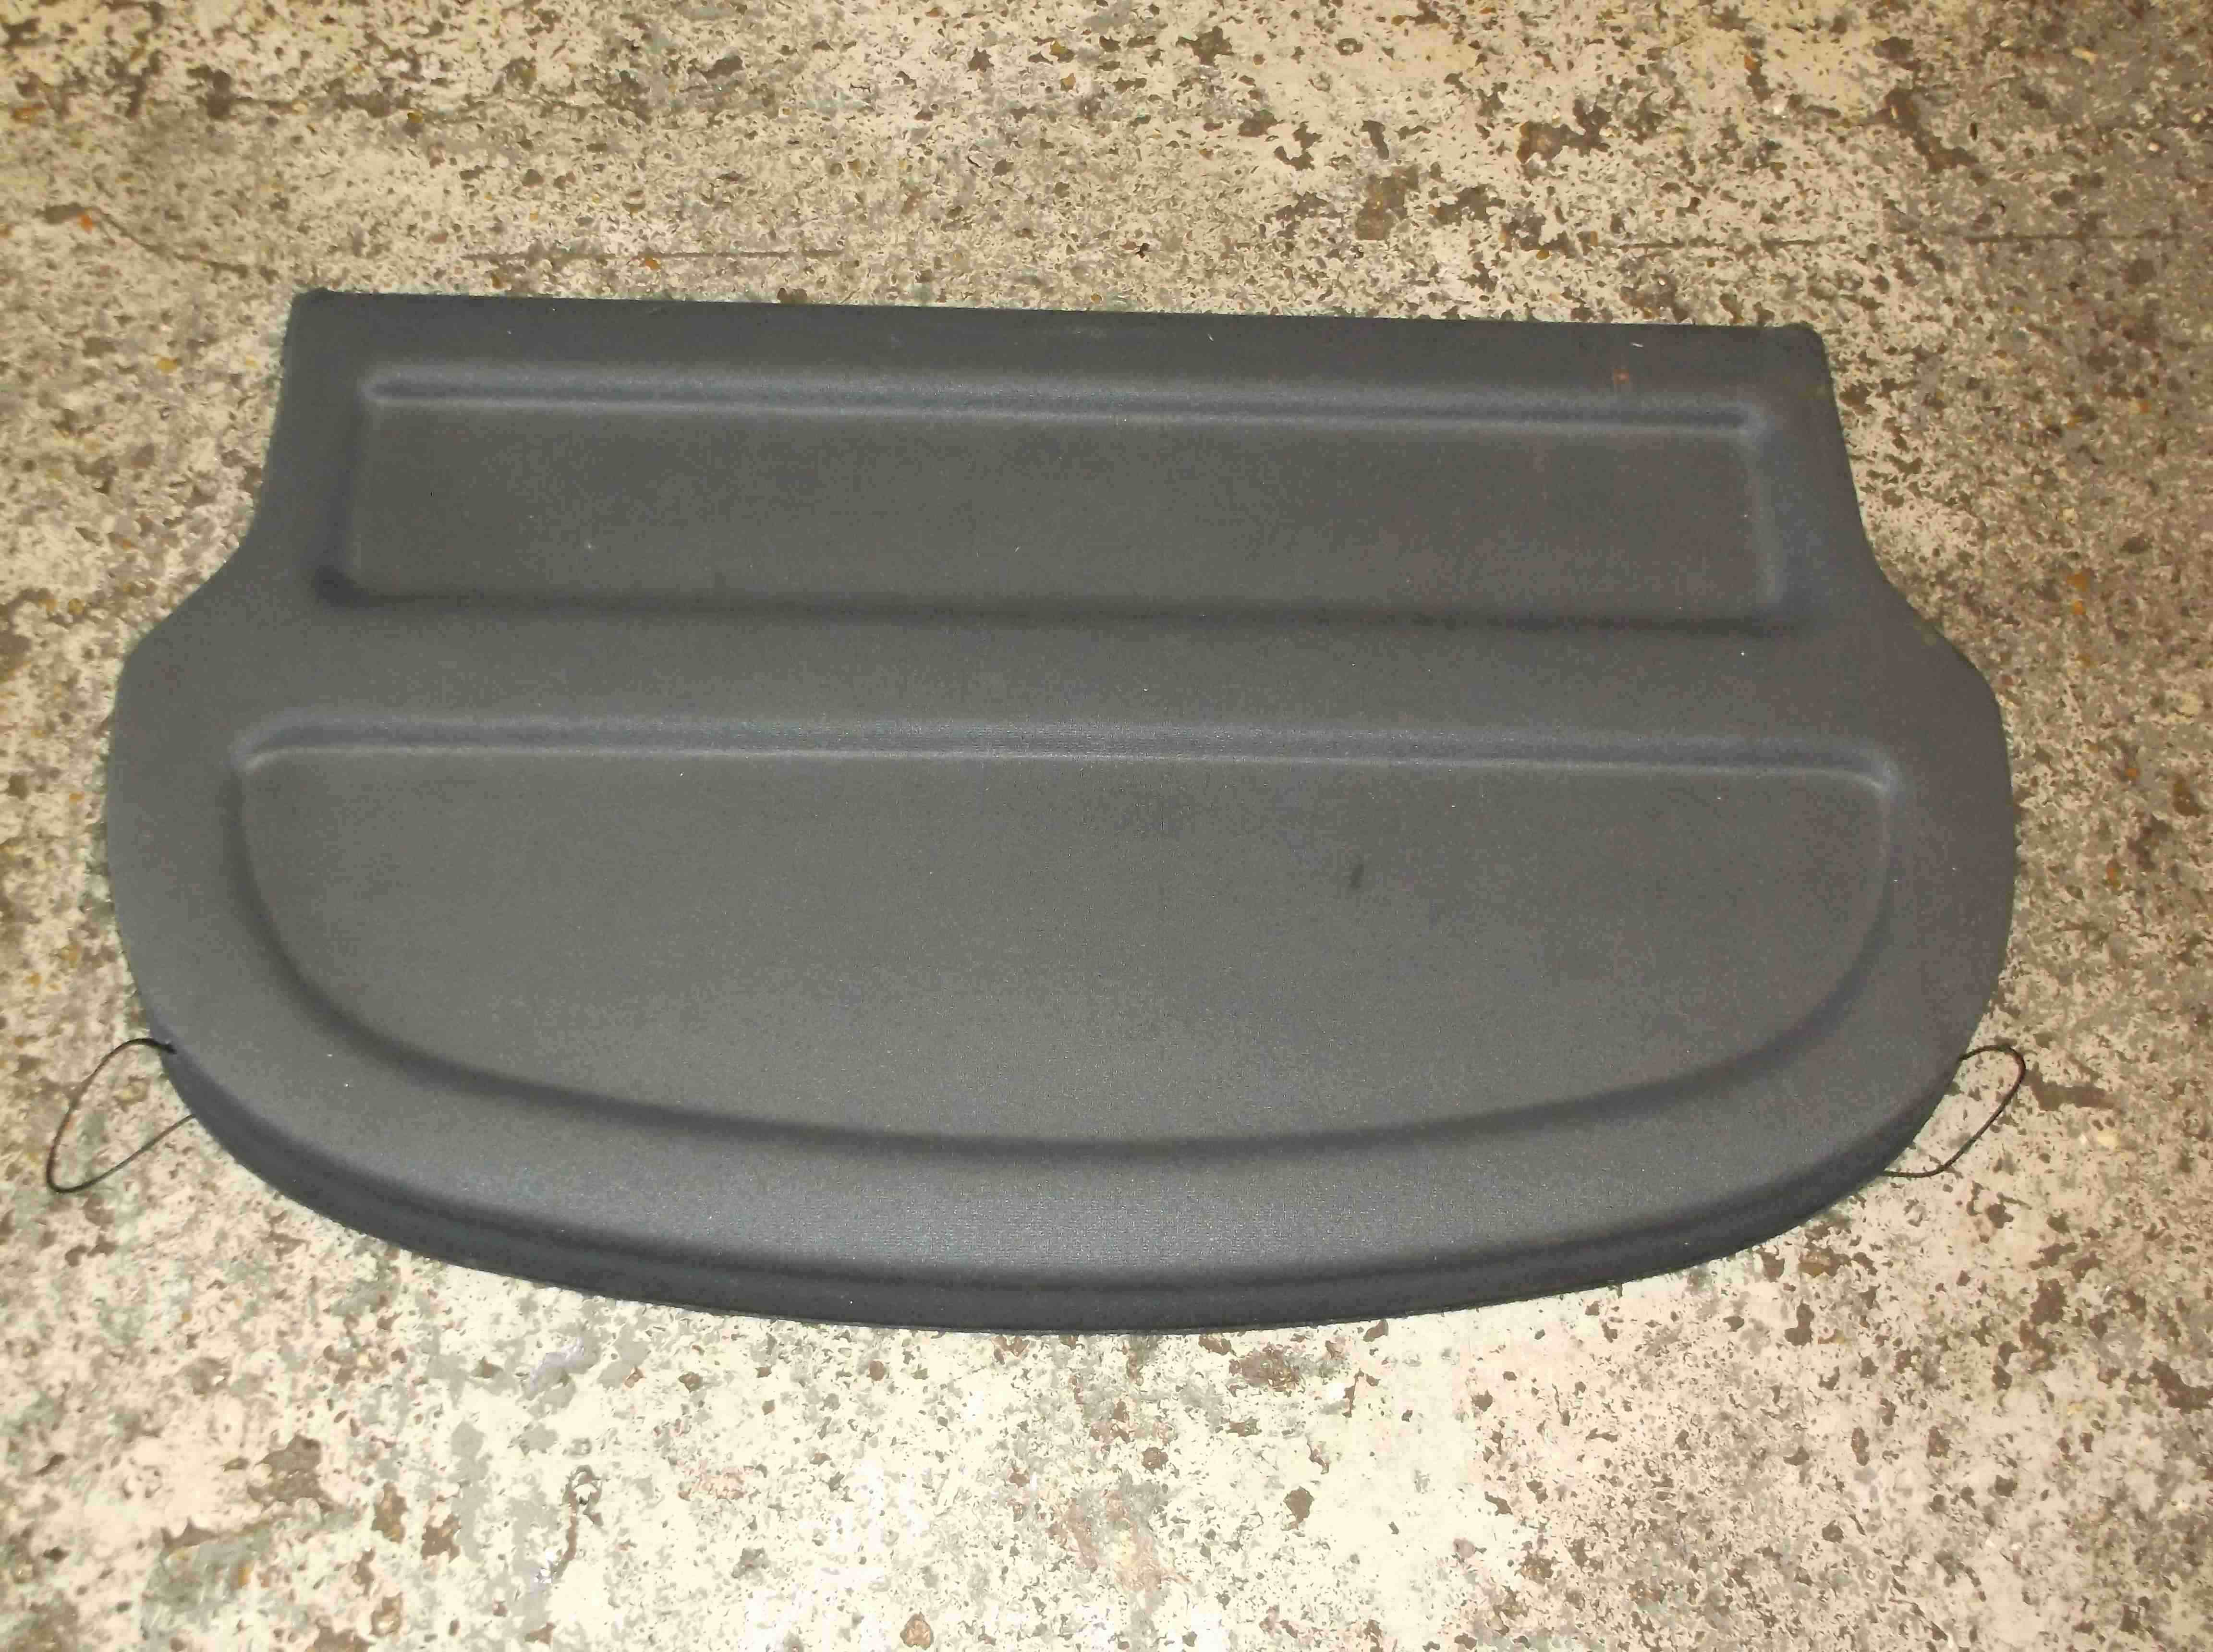 Renault Laguna 2005-2007 Tailgate Boot Parcel Shelf Tray Load Cover